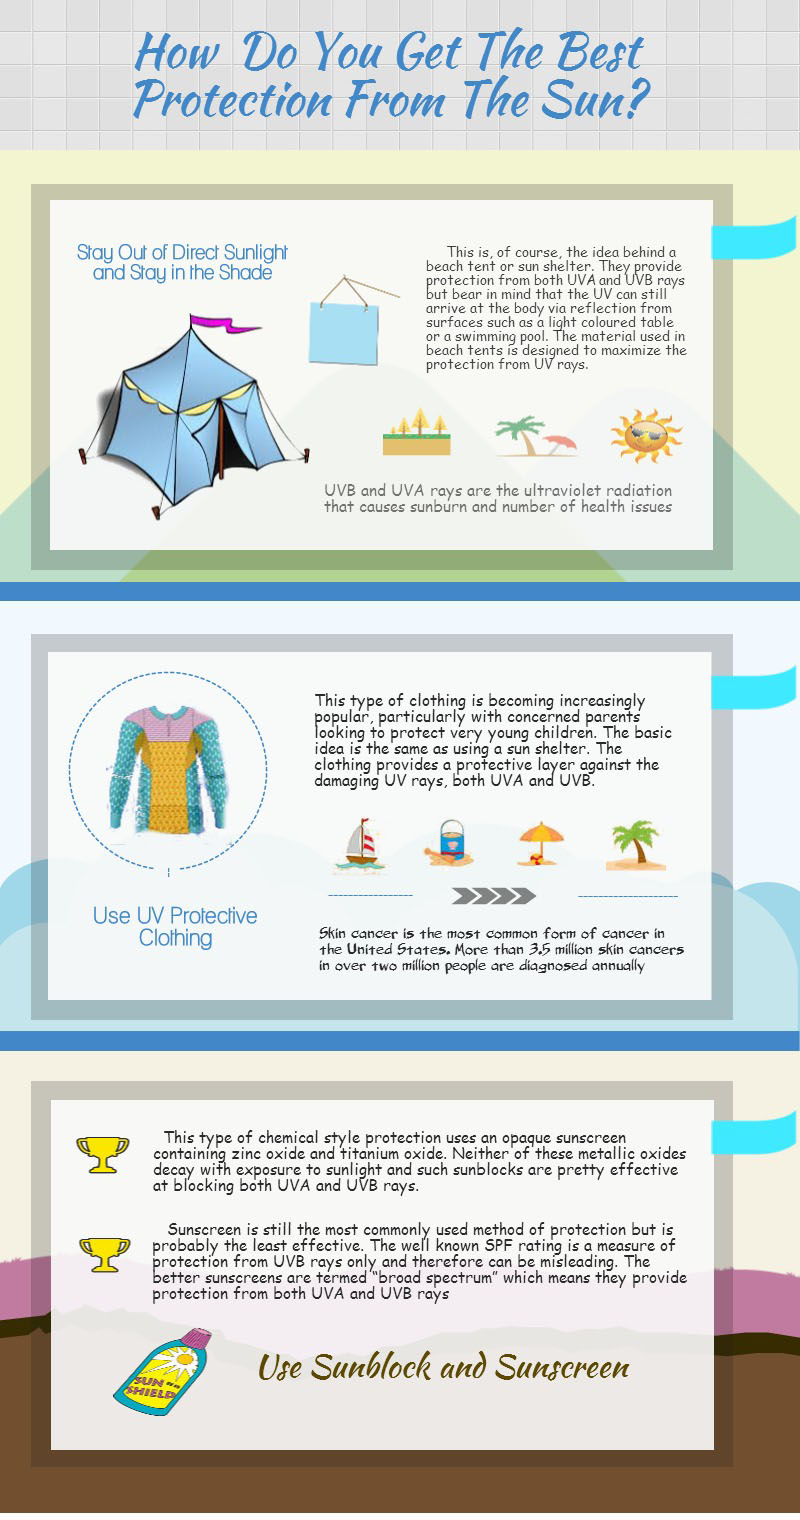 Four ways of protecting yourself from the sun